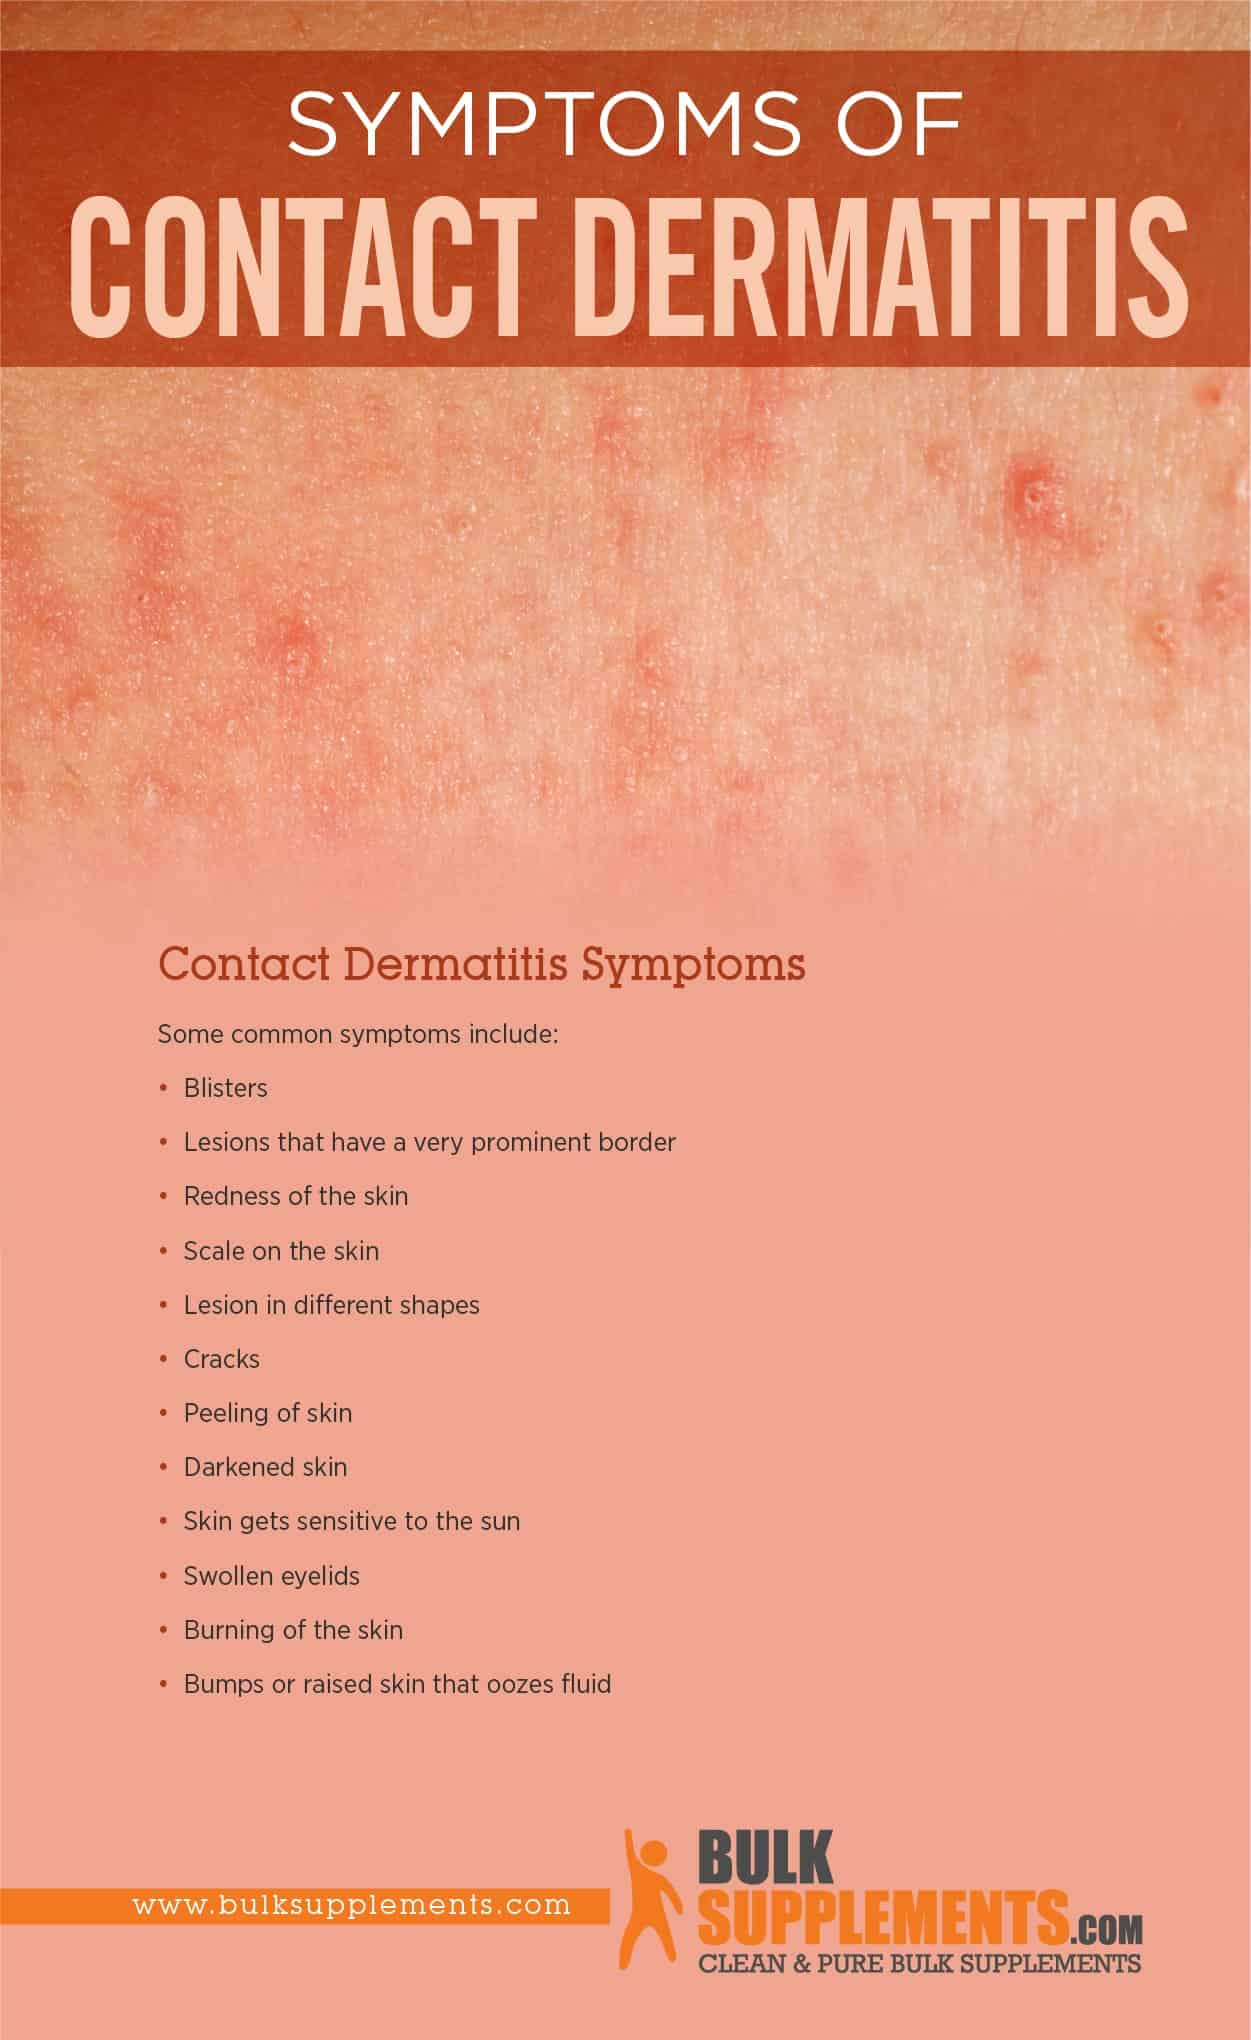 Contact Dermatitis Symptoms